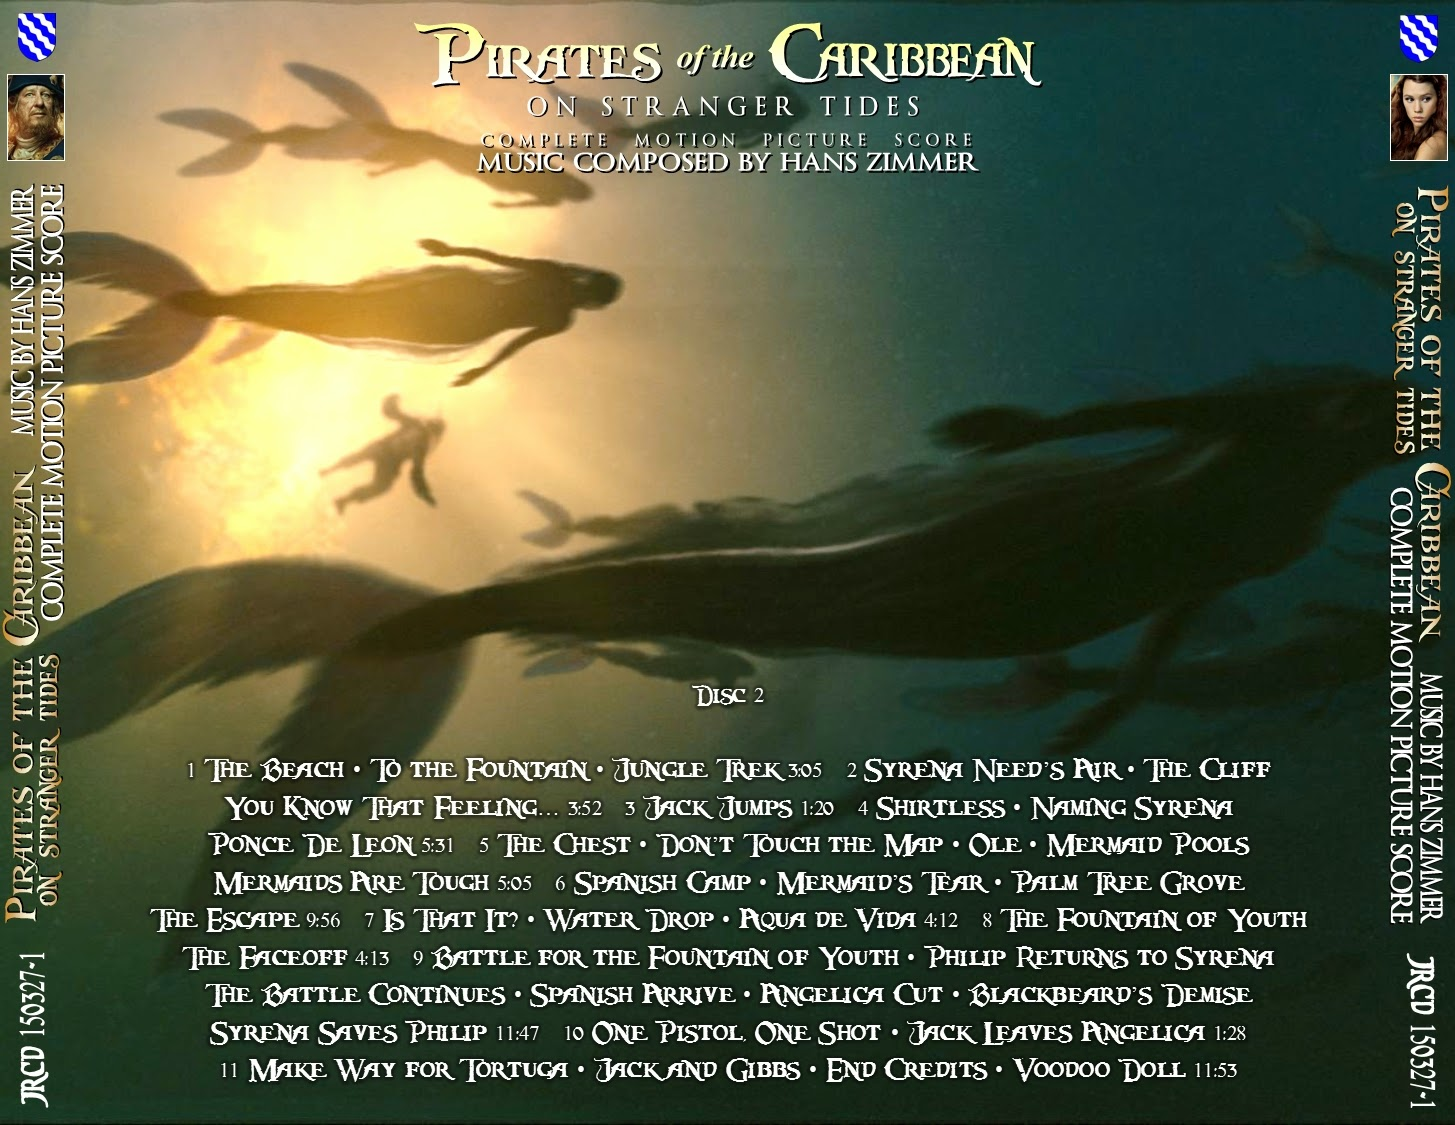 torrent pirates of the caribbean soundtrack